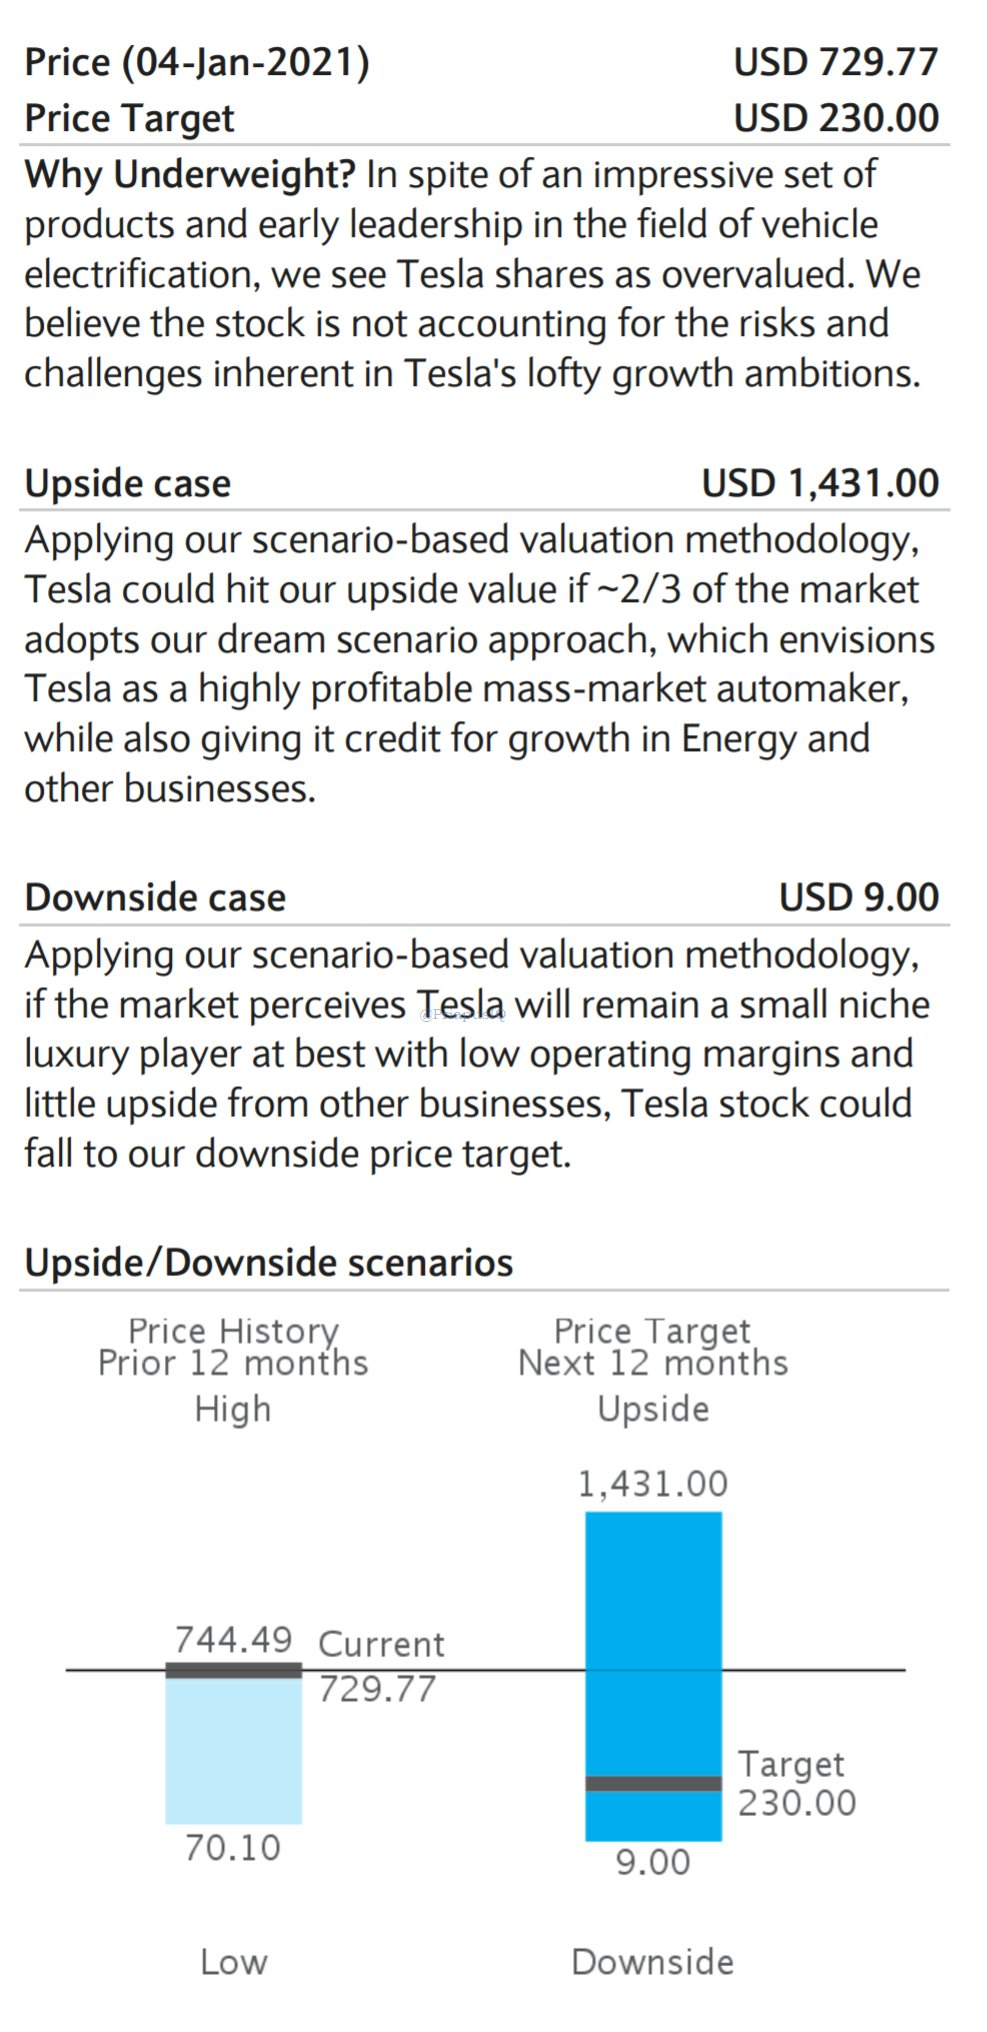 Barclays have a $1431 price target for $TSLA (and another one for... $9)